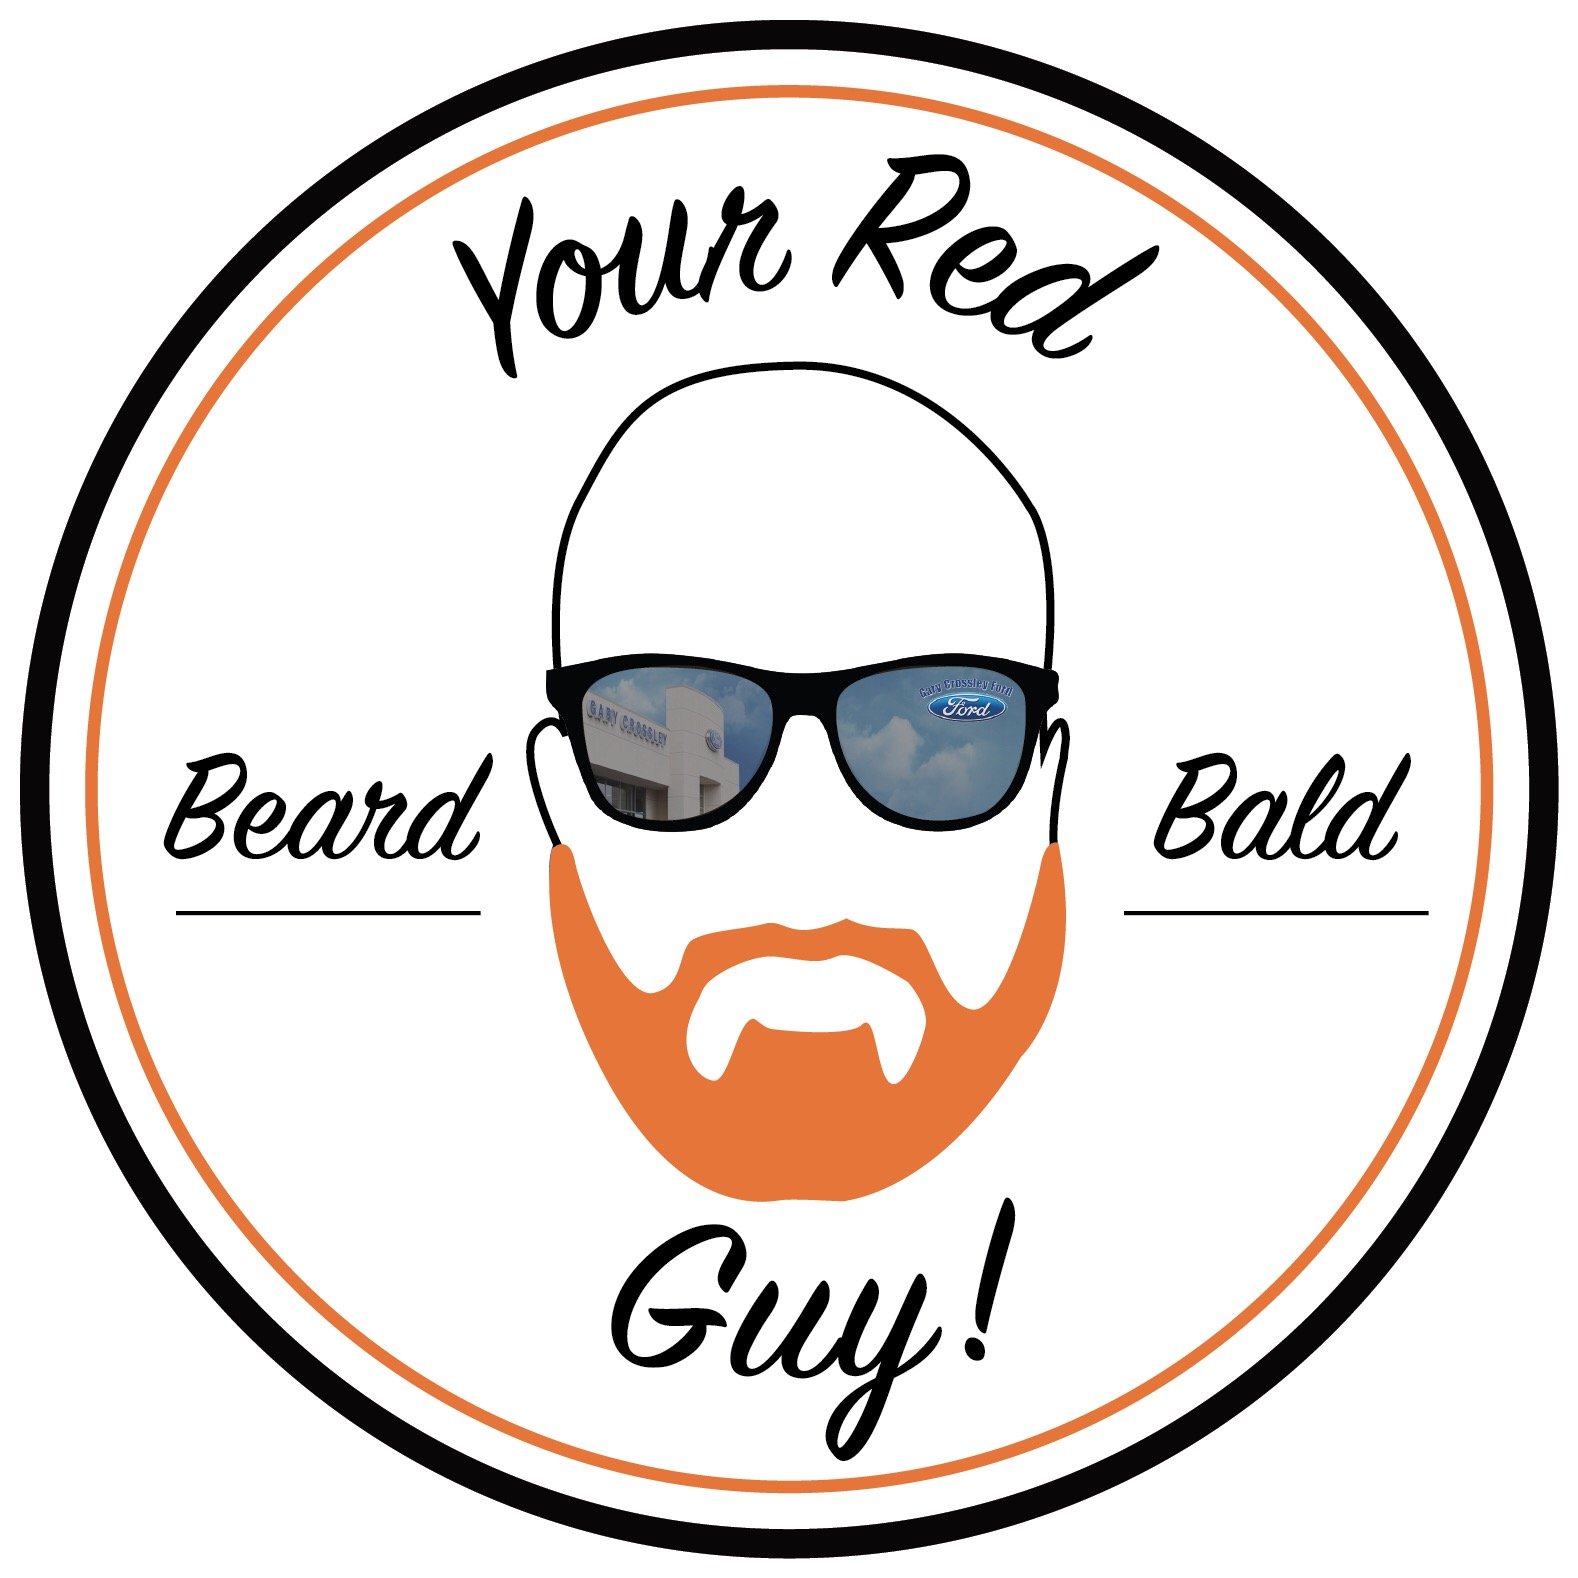 Your Red Beard Bald Guy logo